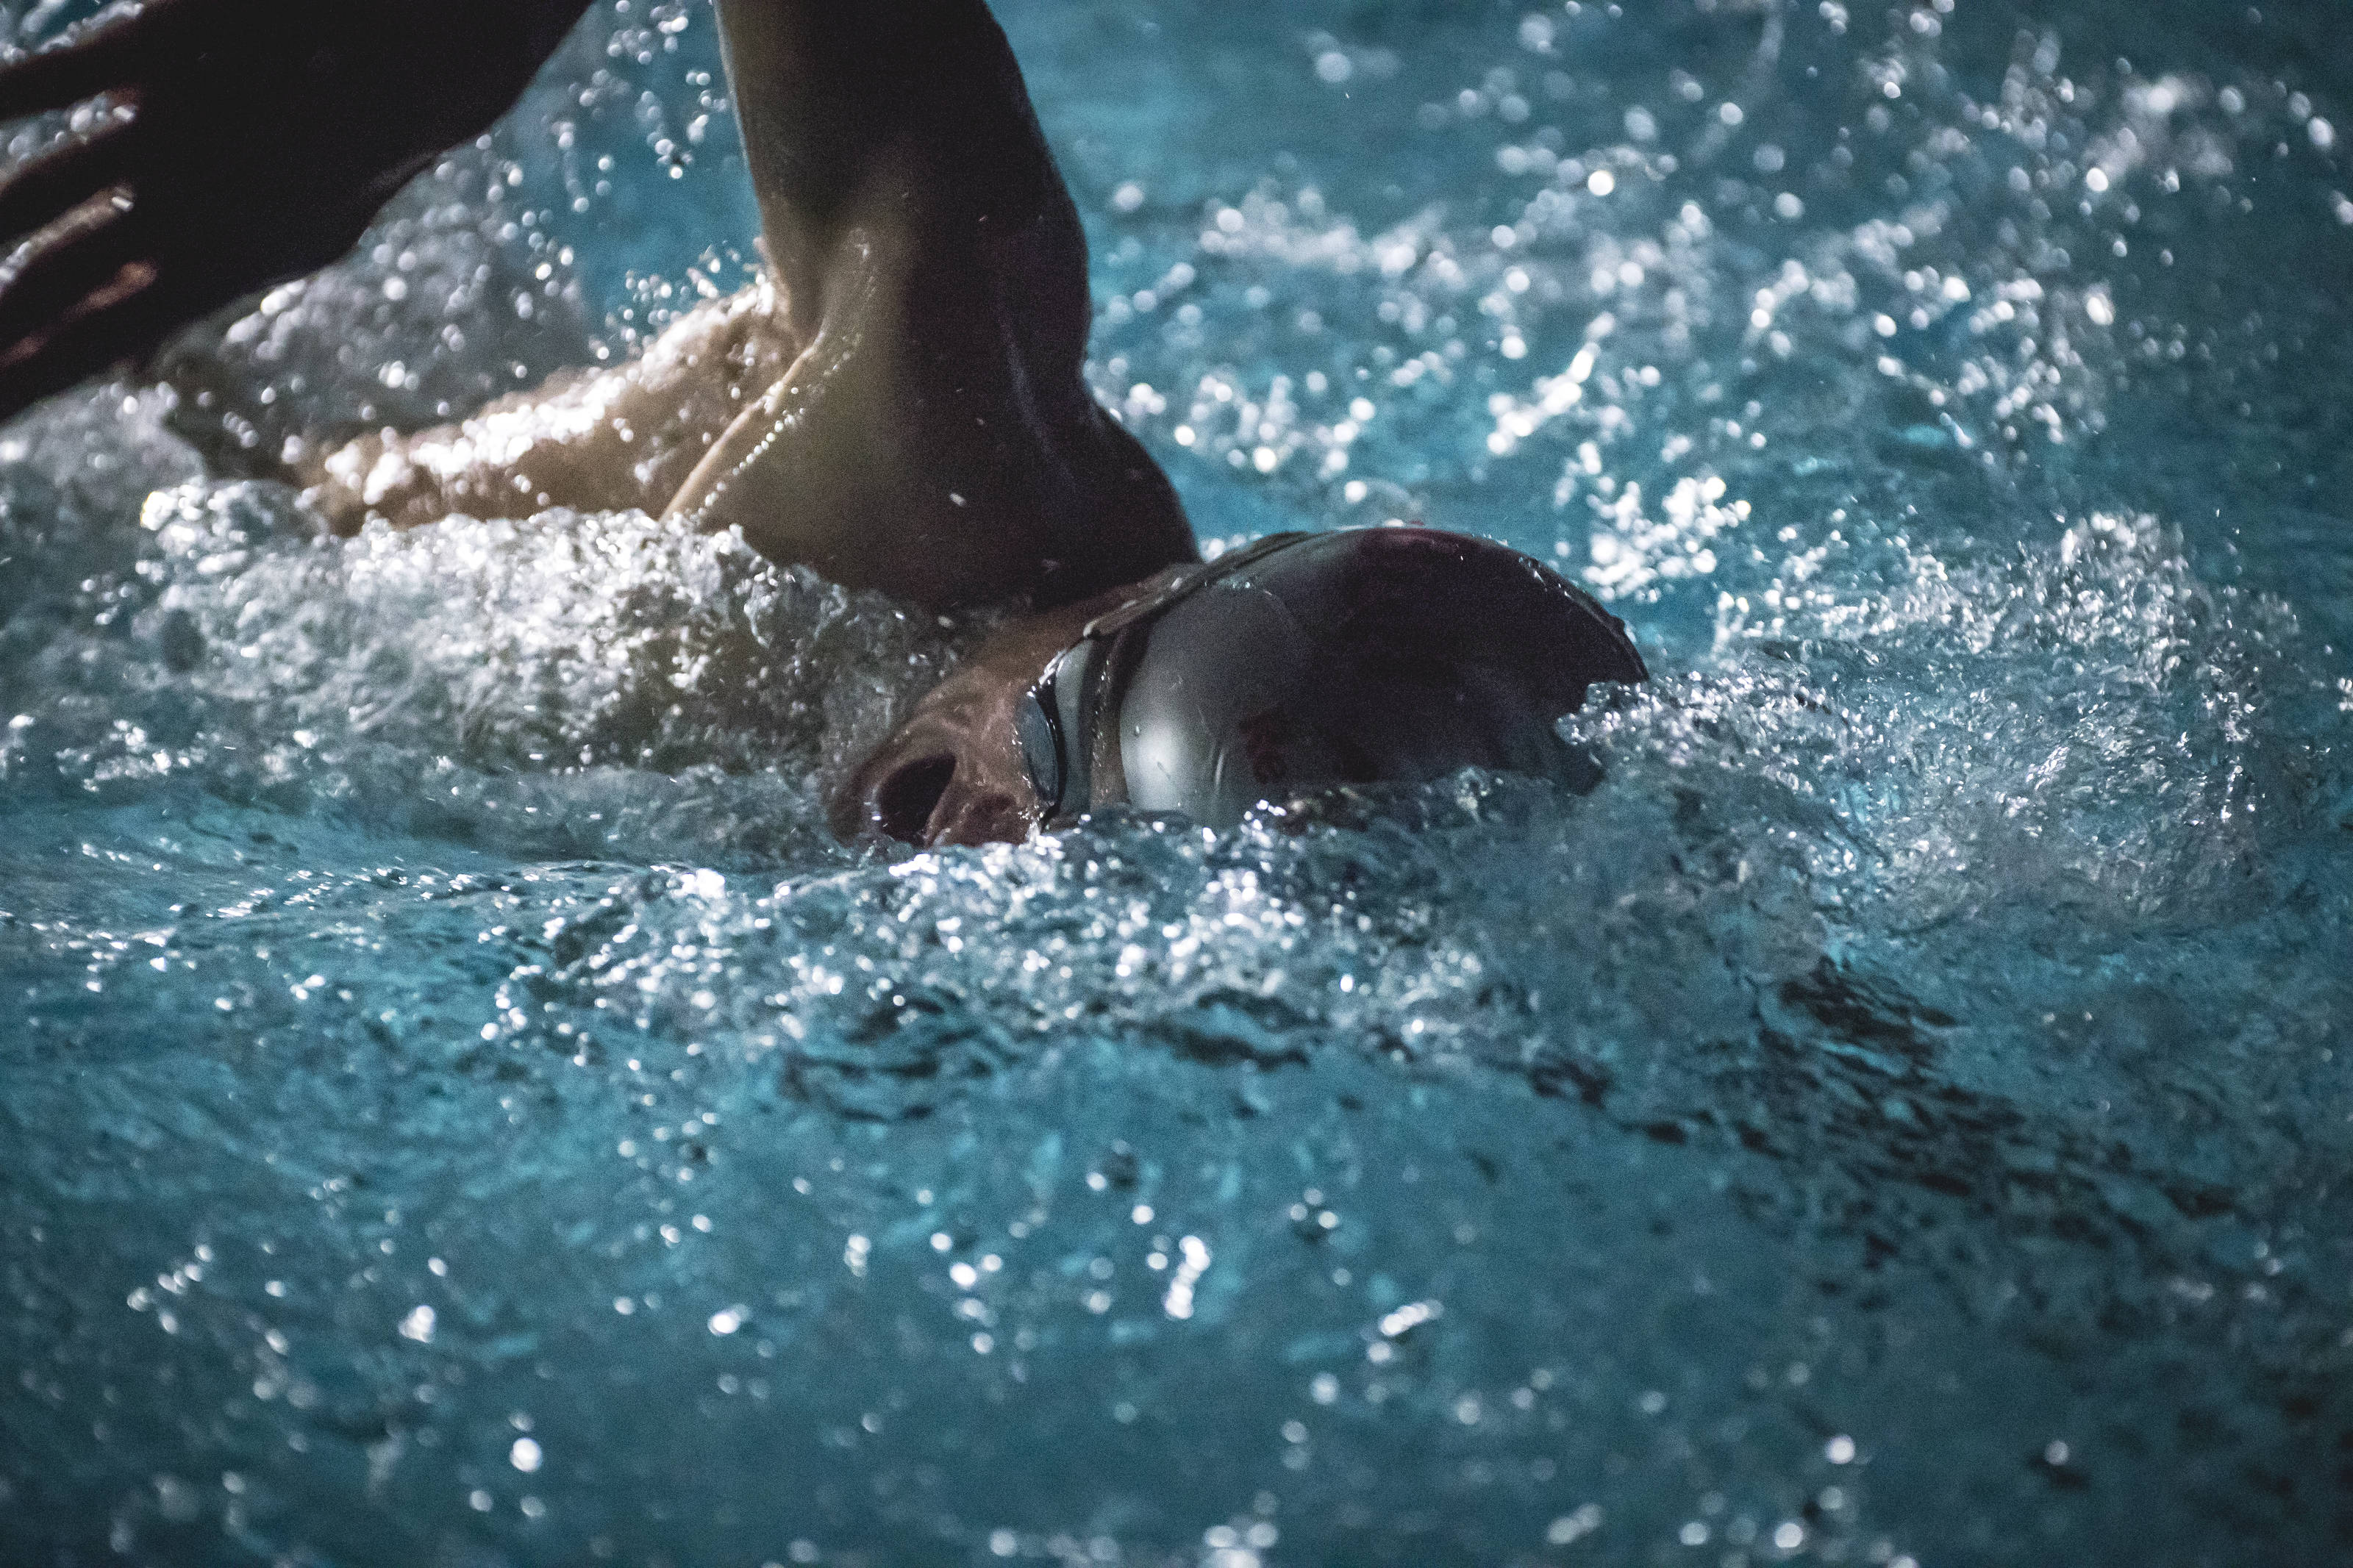 Gerald Ferencz swimming injuries performance rx sports care chiropractor tustin sports massage